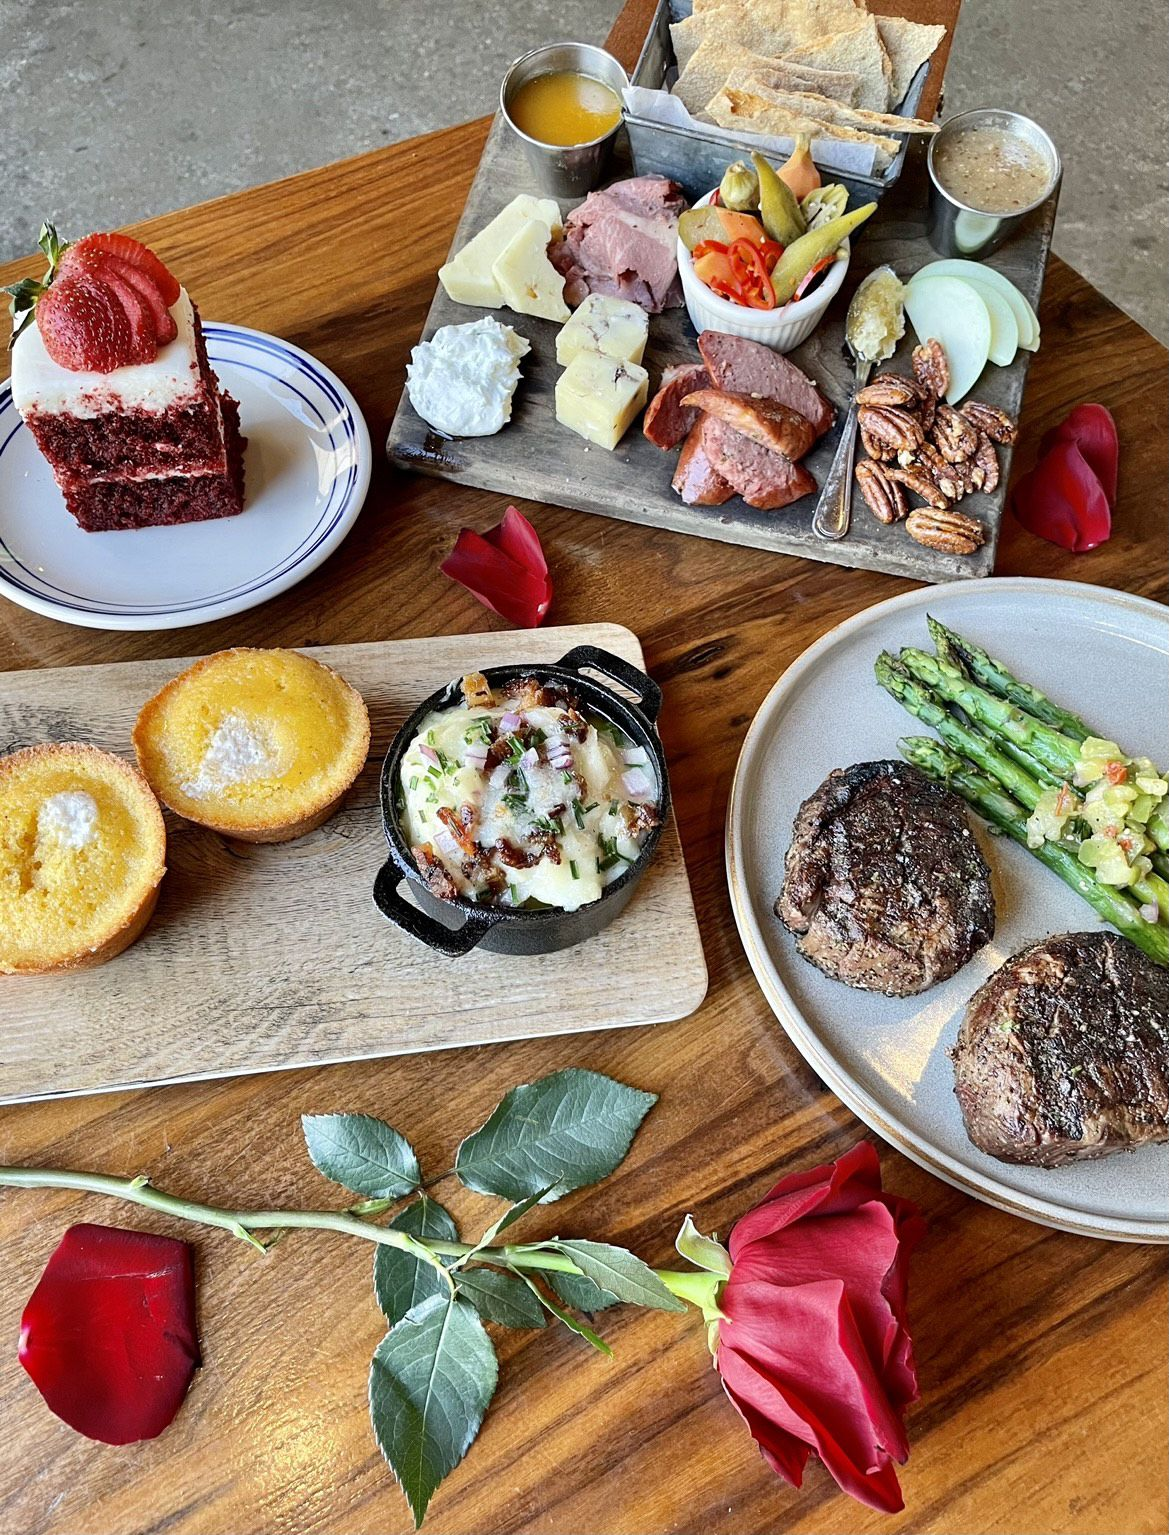 Haywire and The Ranch at Las Colinas offer the ready-to-heat Valentine s Day Couples Kit that includes a meat and cheese board, two 8-ounce filets, loaded mashed potatoes, grilled asparagus, cornbread and a a slice of four-layer red velvet cake.